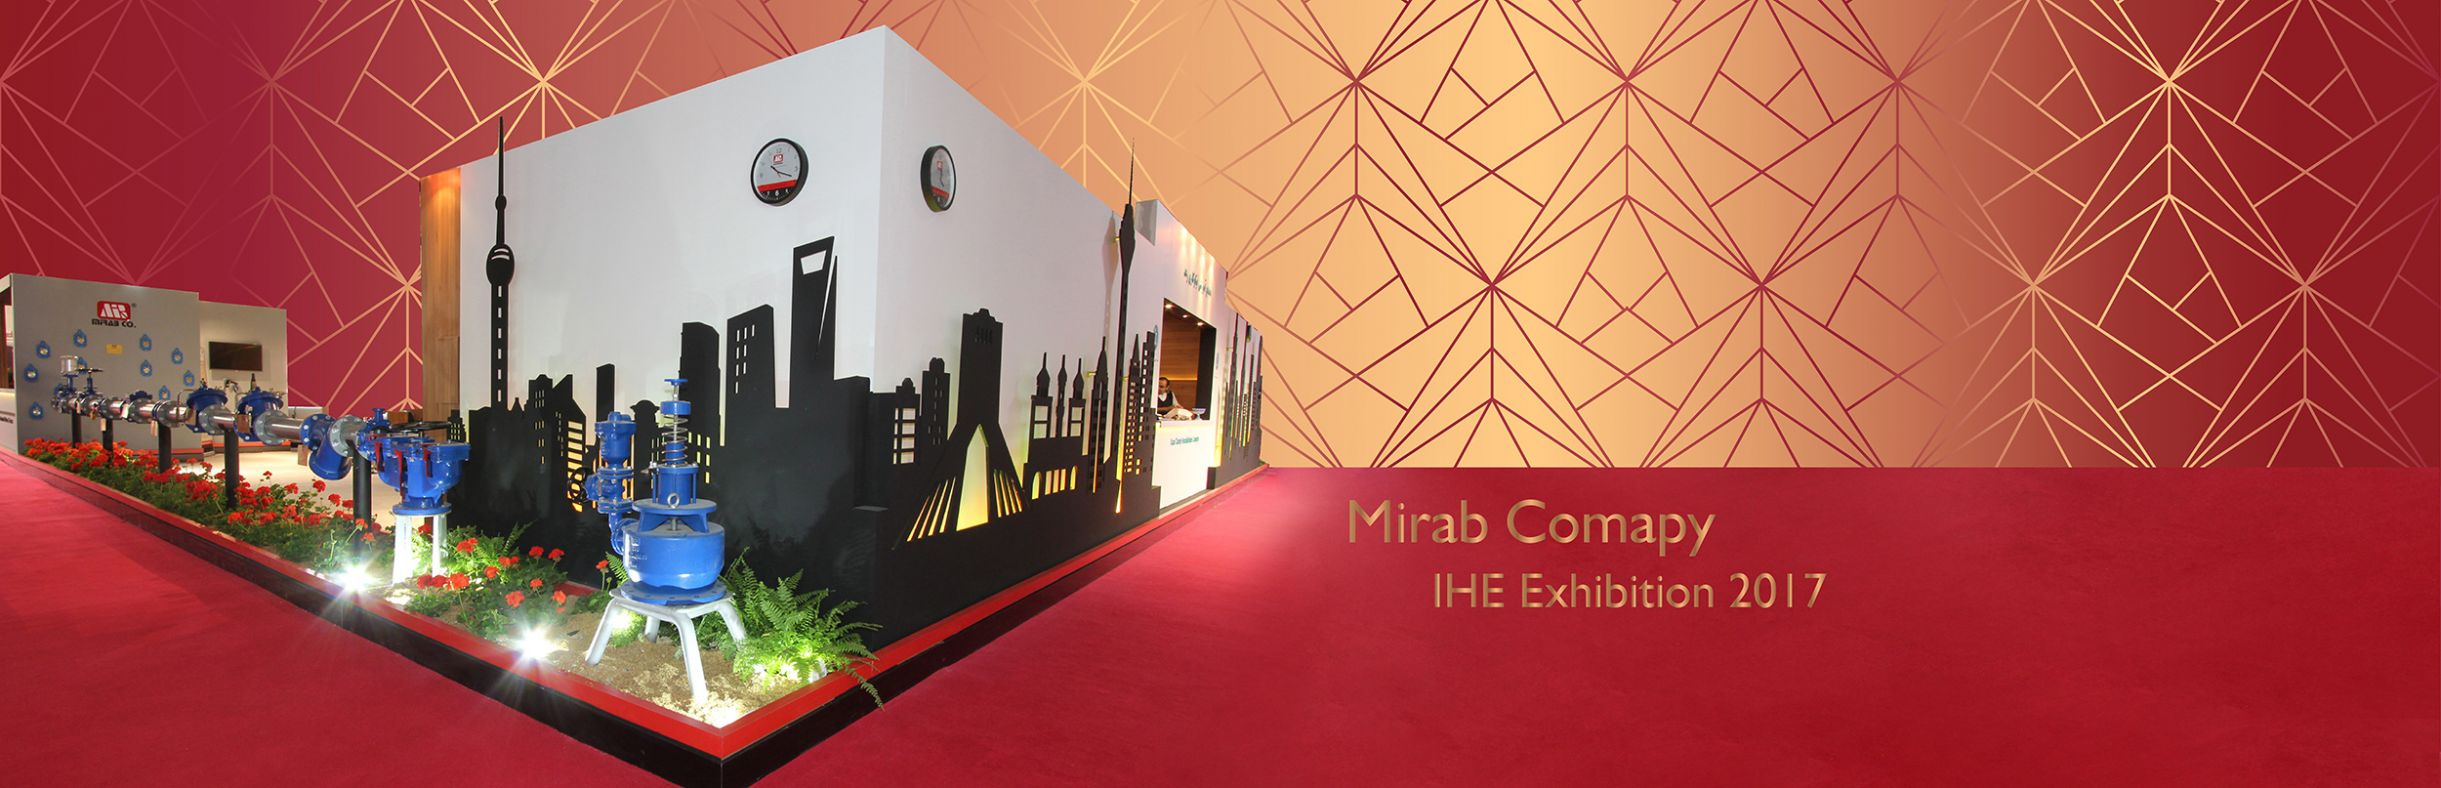 MIRAB | Iran Hvac& R (IHE) | CNC Cut |Tailor Made Stand | Exhibition Stand Contractor in Iran | Sepanj Sazeh